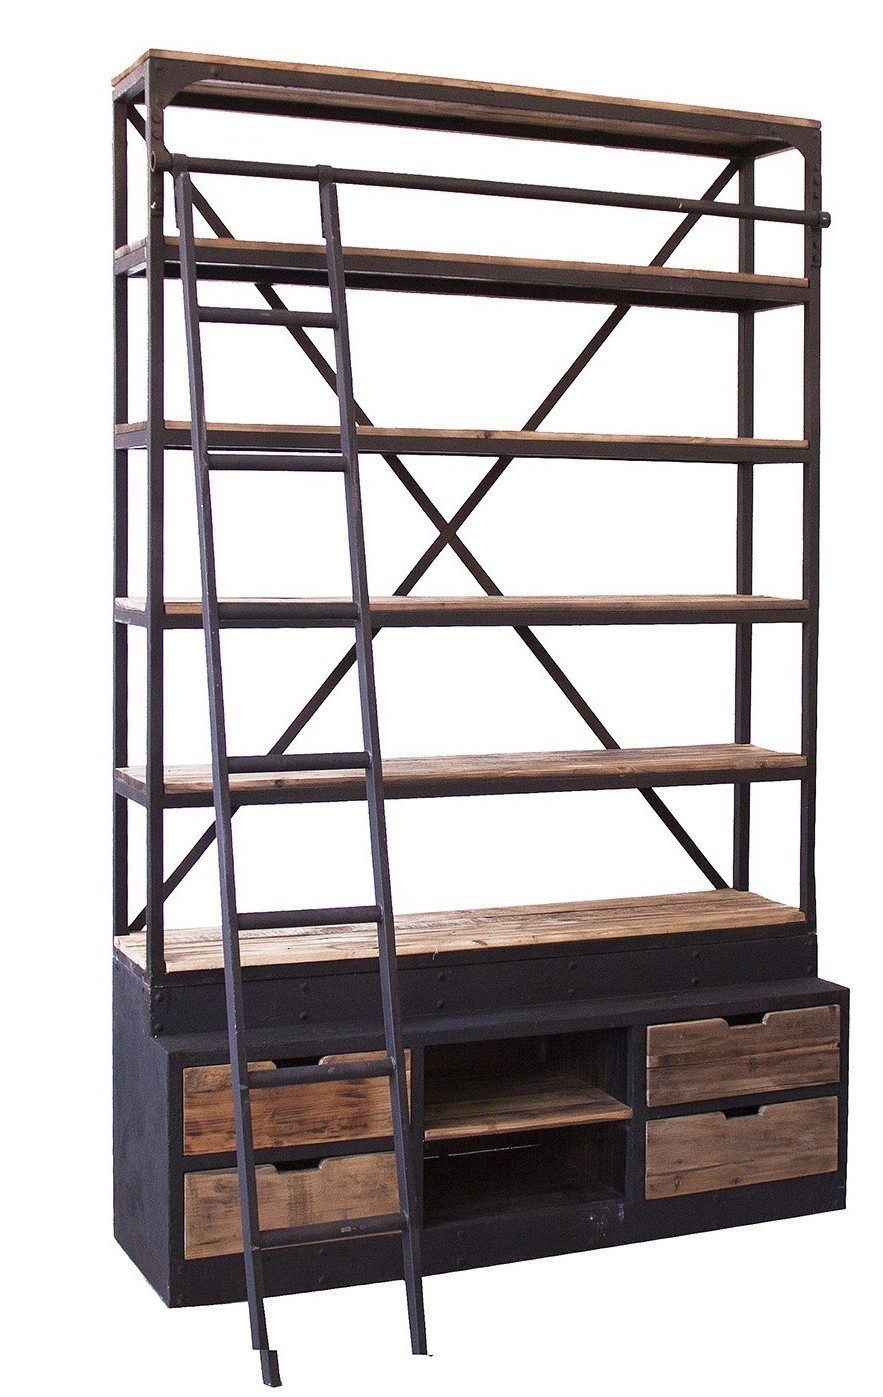 grande biblioth que avec chelle vintage bois de pin naturel et m tal noir punky. Black Bedroom Furniture Sets. Home Design Ideas